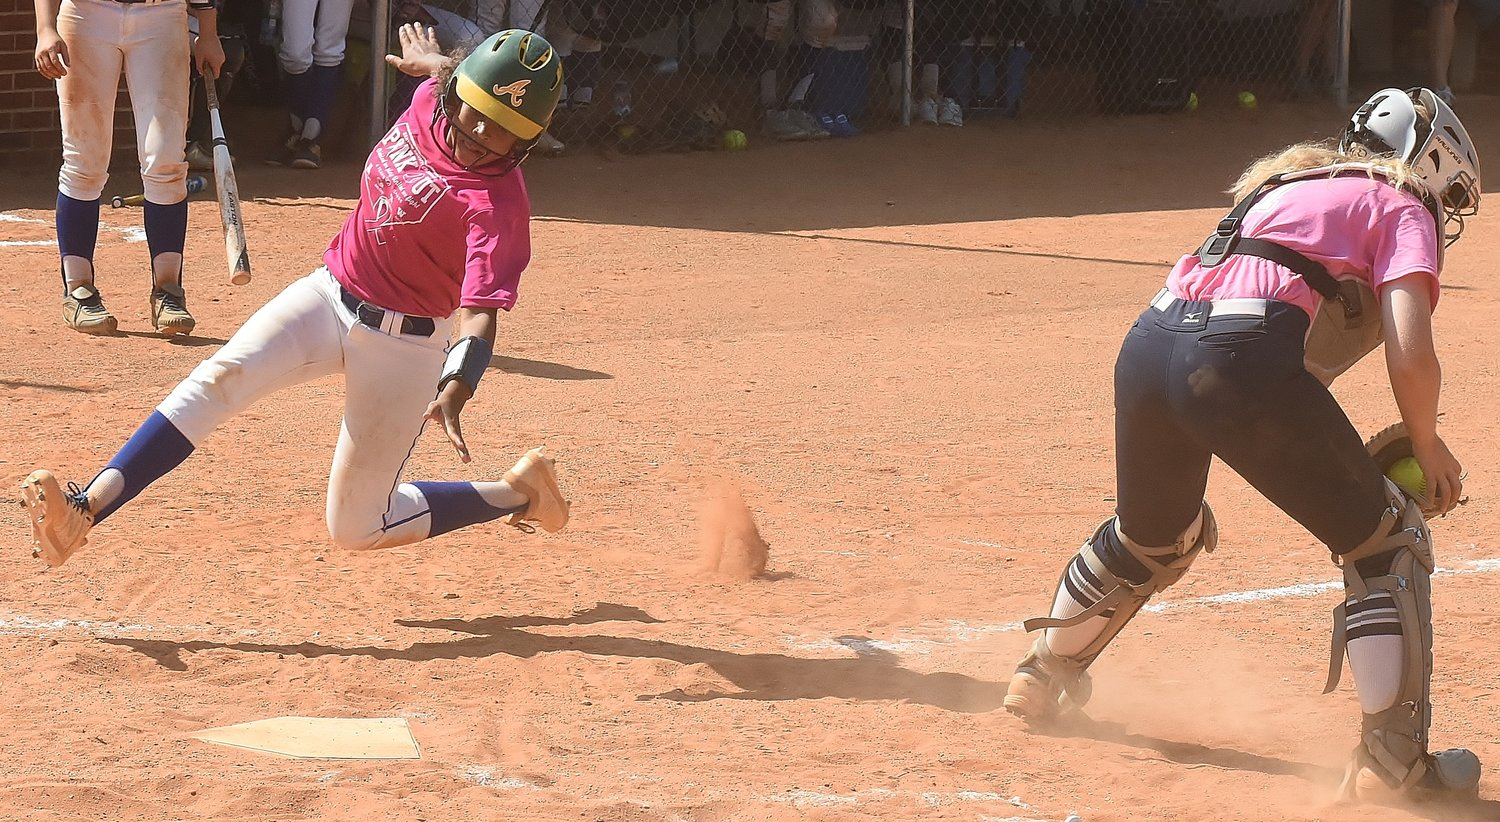 Cass freshman Alexis Woods scores ahead of a throw to Woodland senior catcher Allyssa Motes during Saturday's game at Adairsville Middle School.